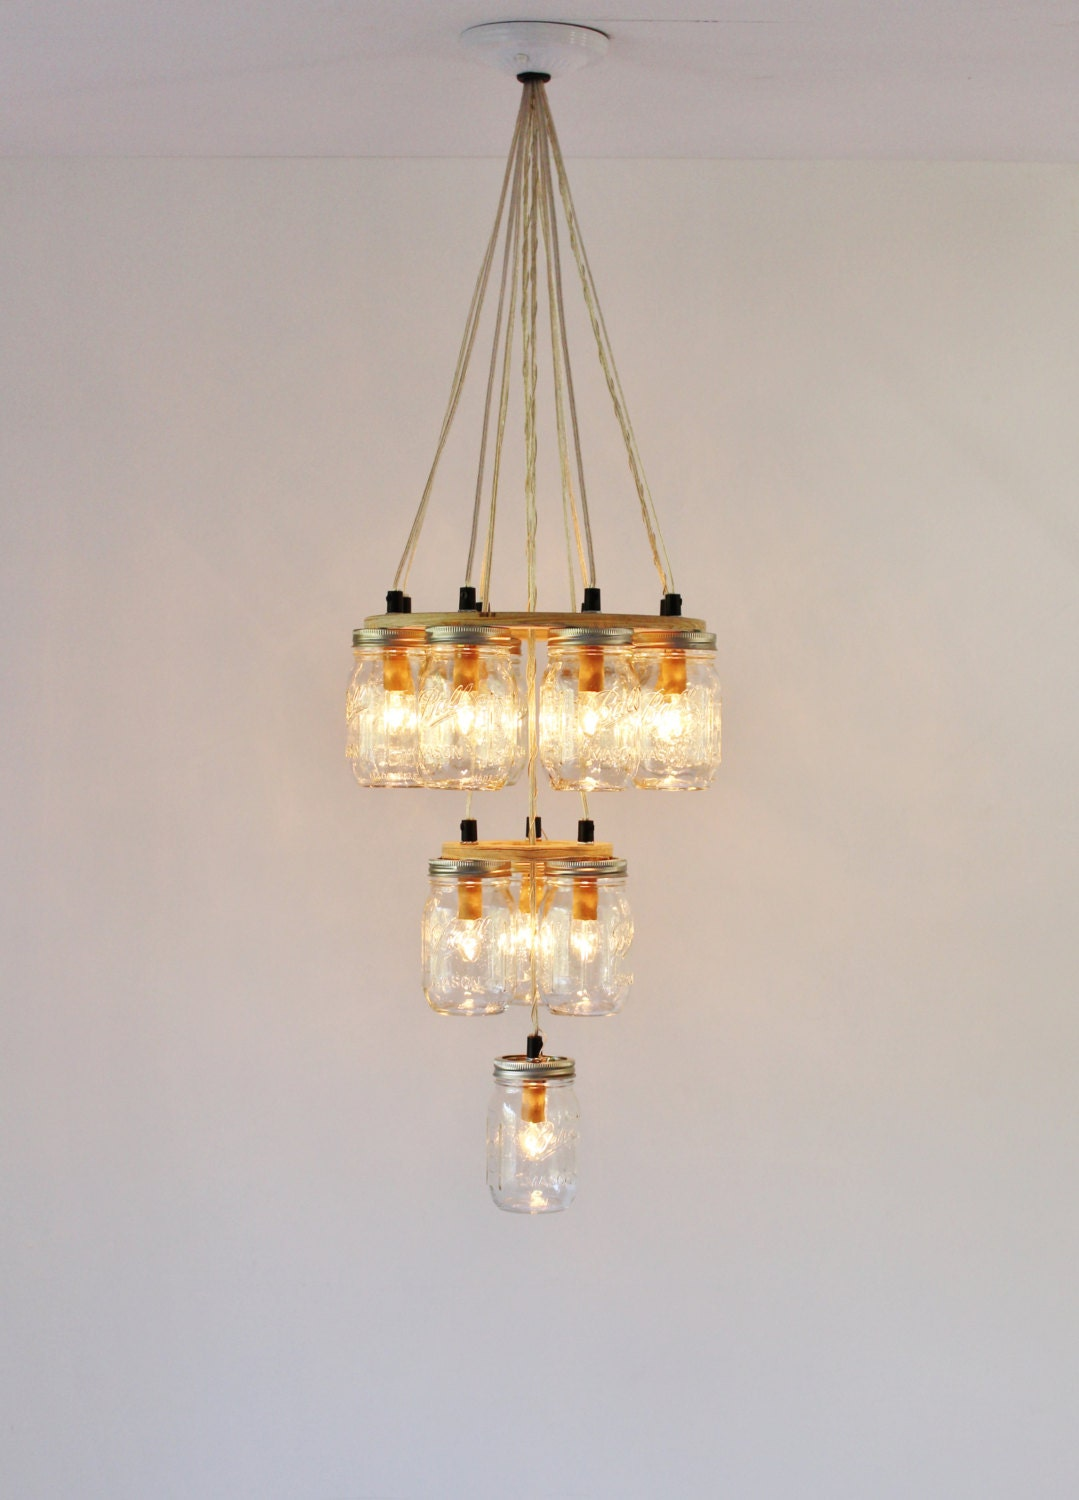 Mason Jar Chandelier Large 3 Tier Mason Jar Lighting Fixture